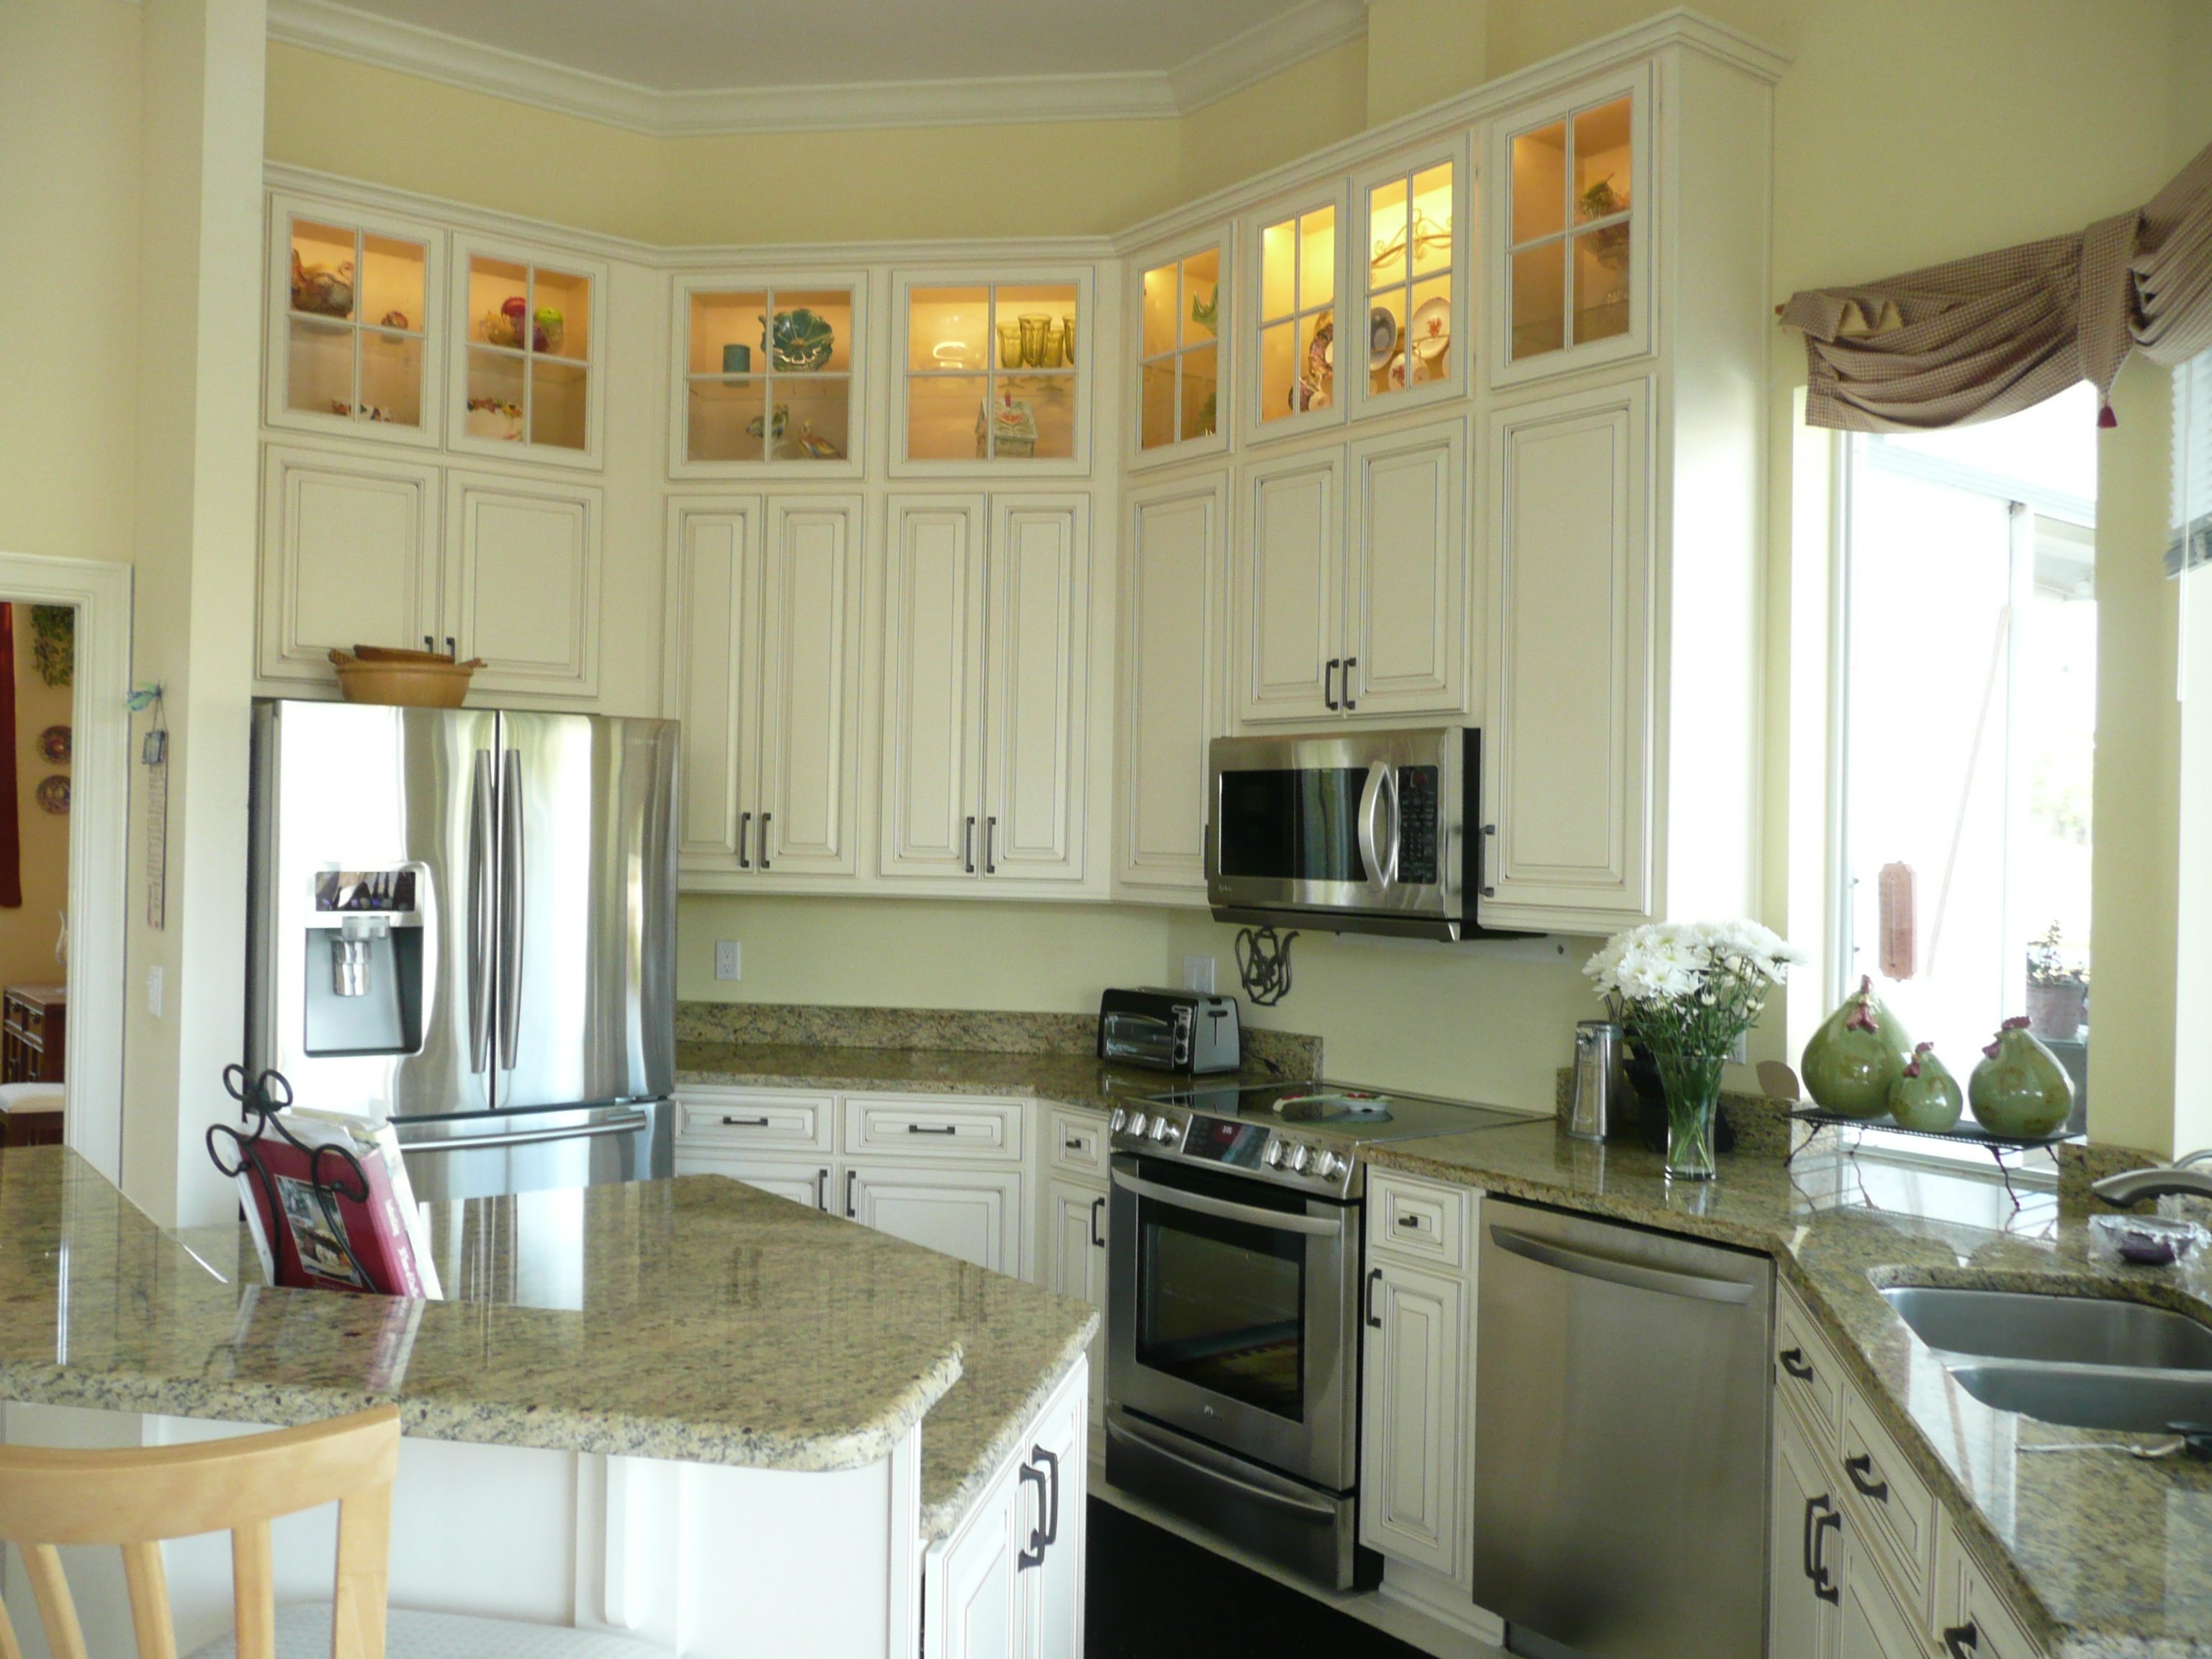 Kitchen solvers 3433 lithia pinecrest rd 317 valrico fl - Kitchen cabinets brandon fl ...